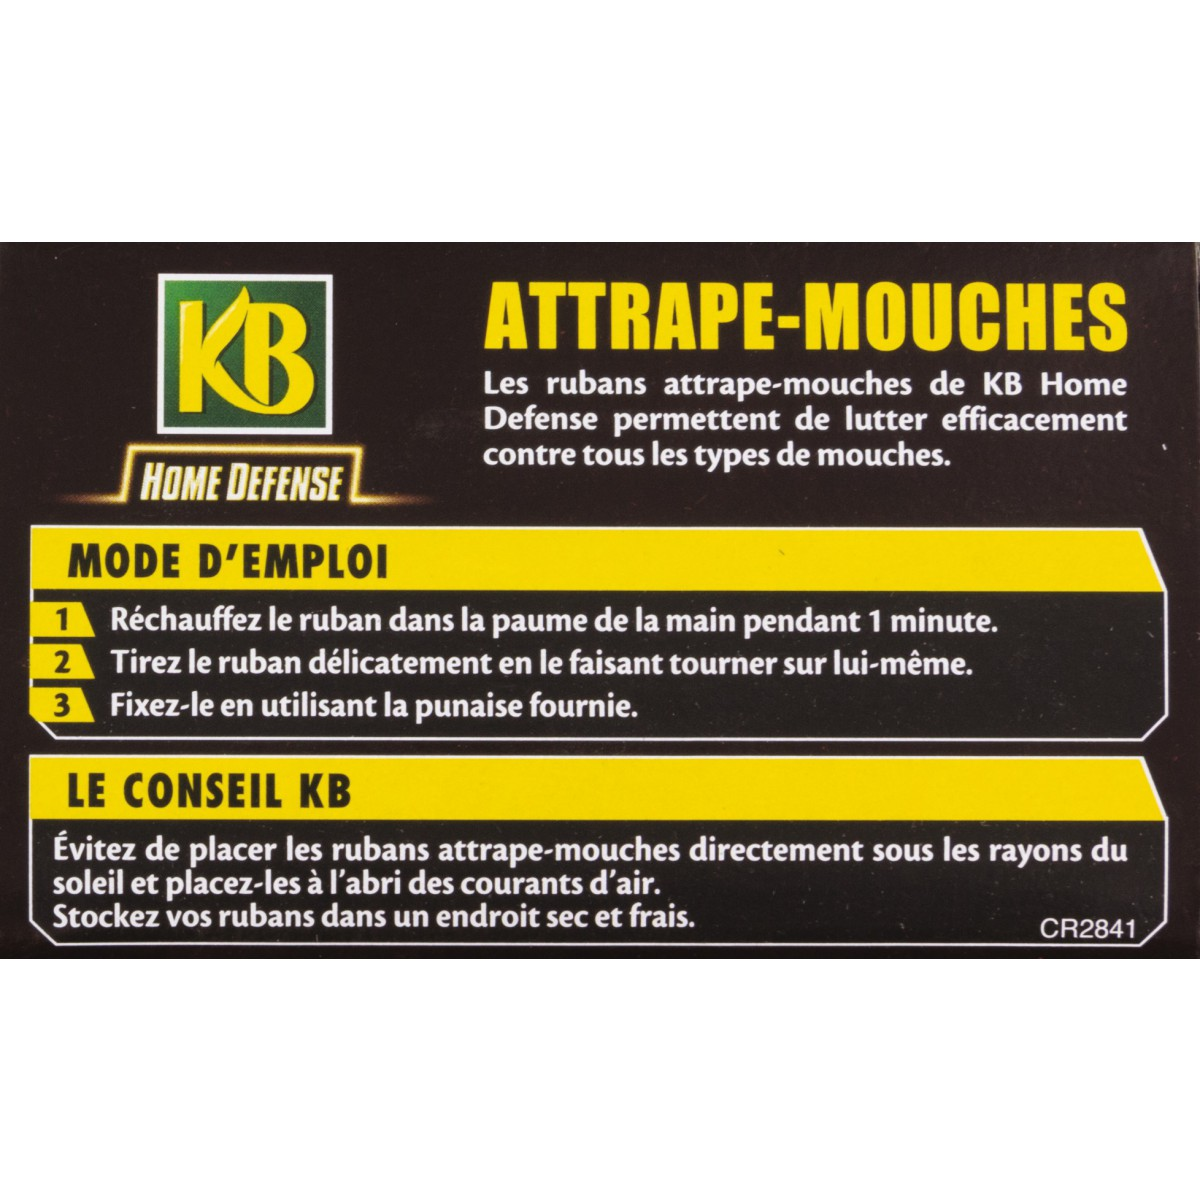 Attrape-mouches ruban KB Home Defense - Vendu par 4